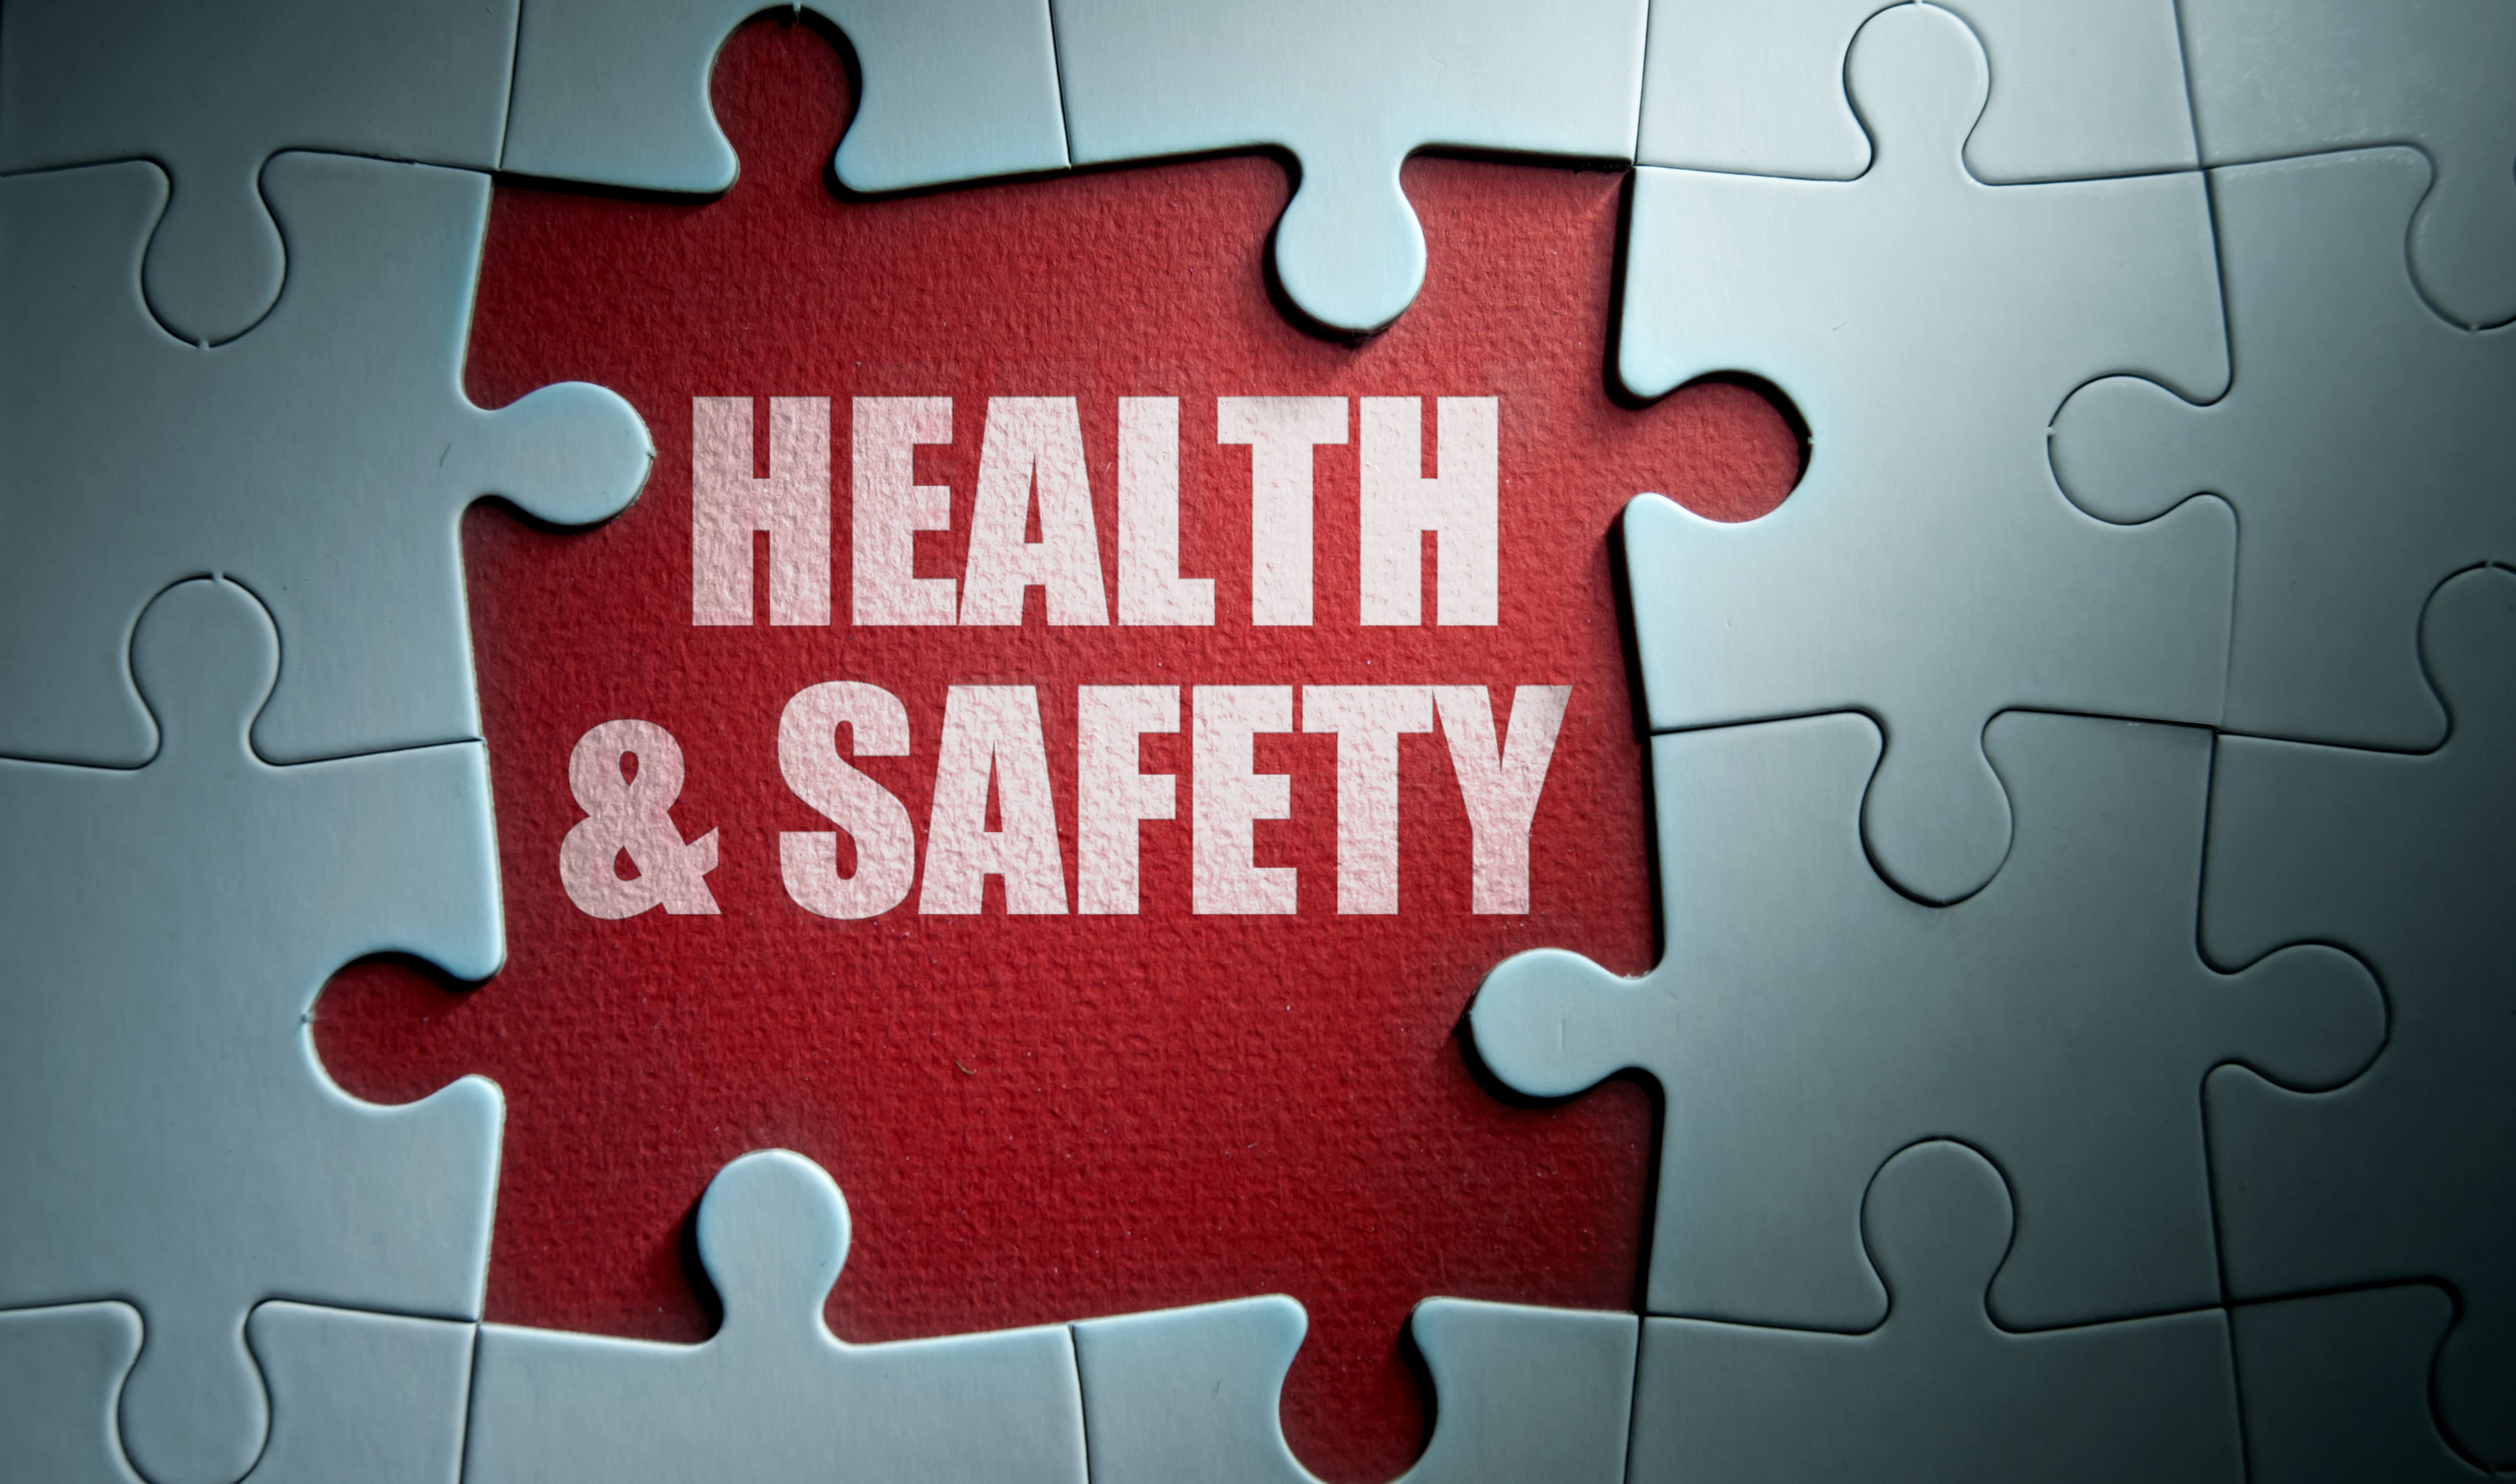 occupational health and safety workplace Acts and regulations of parliament used to govern workplace health and safety throughout queensland.